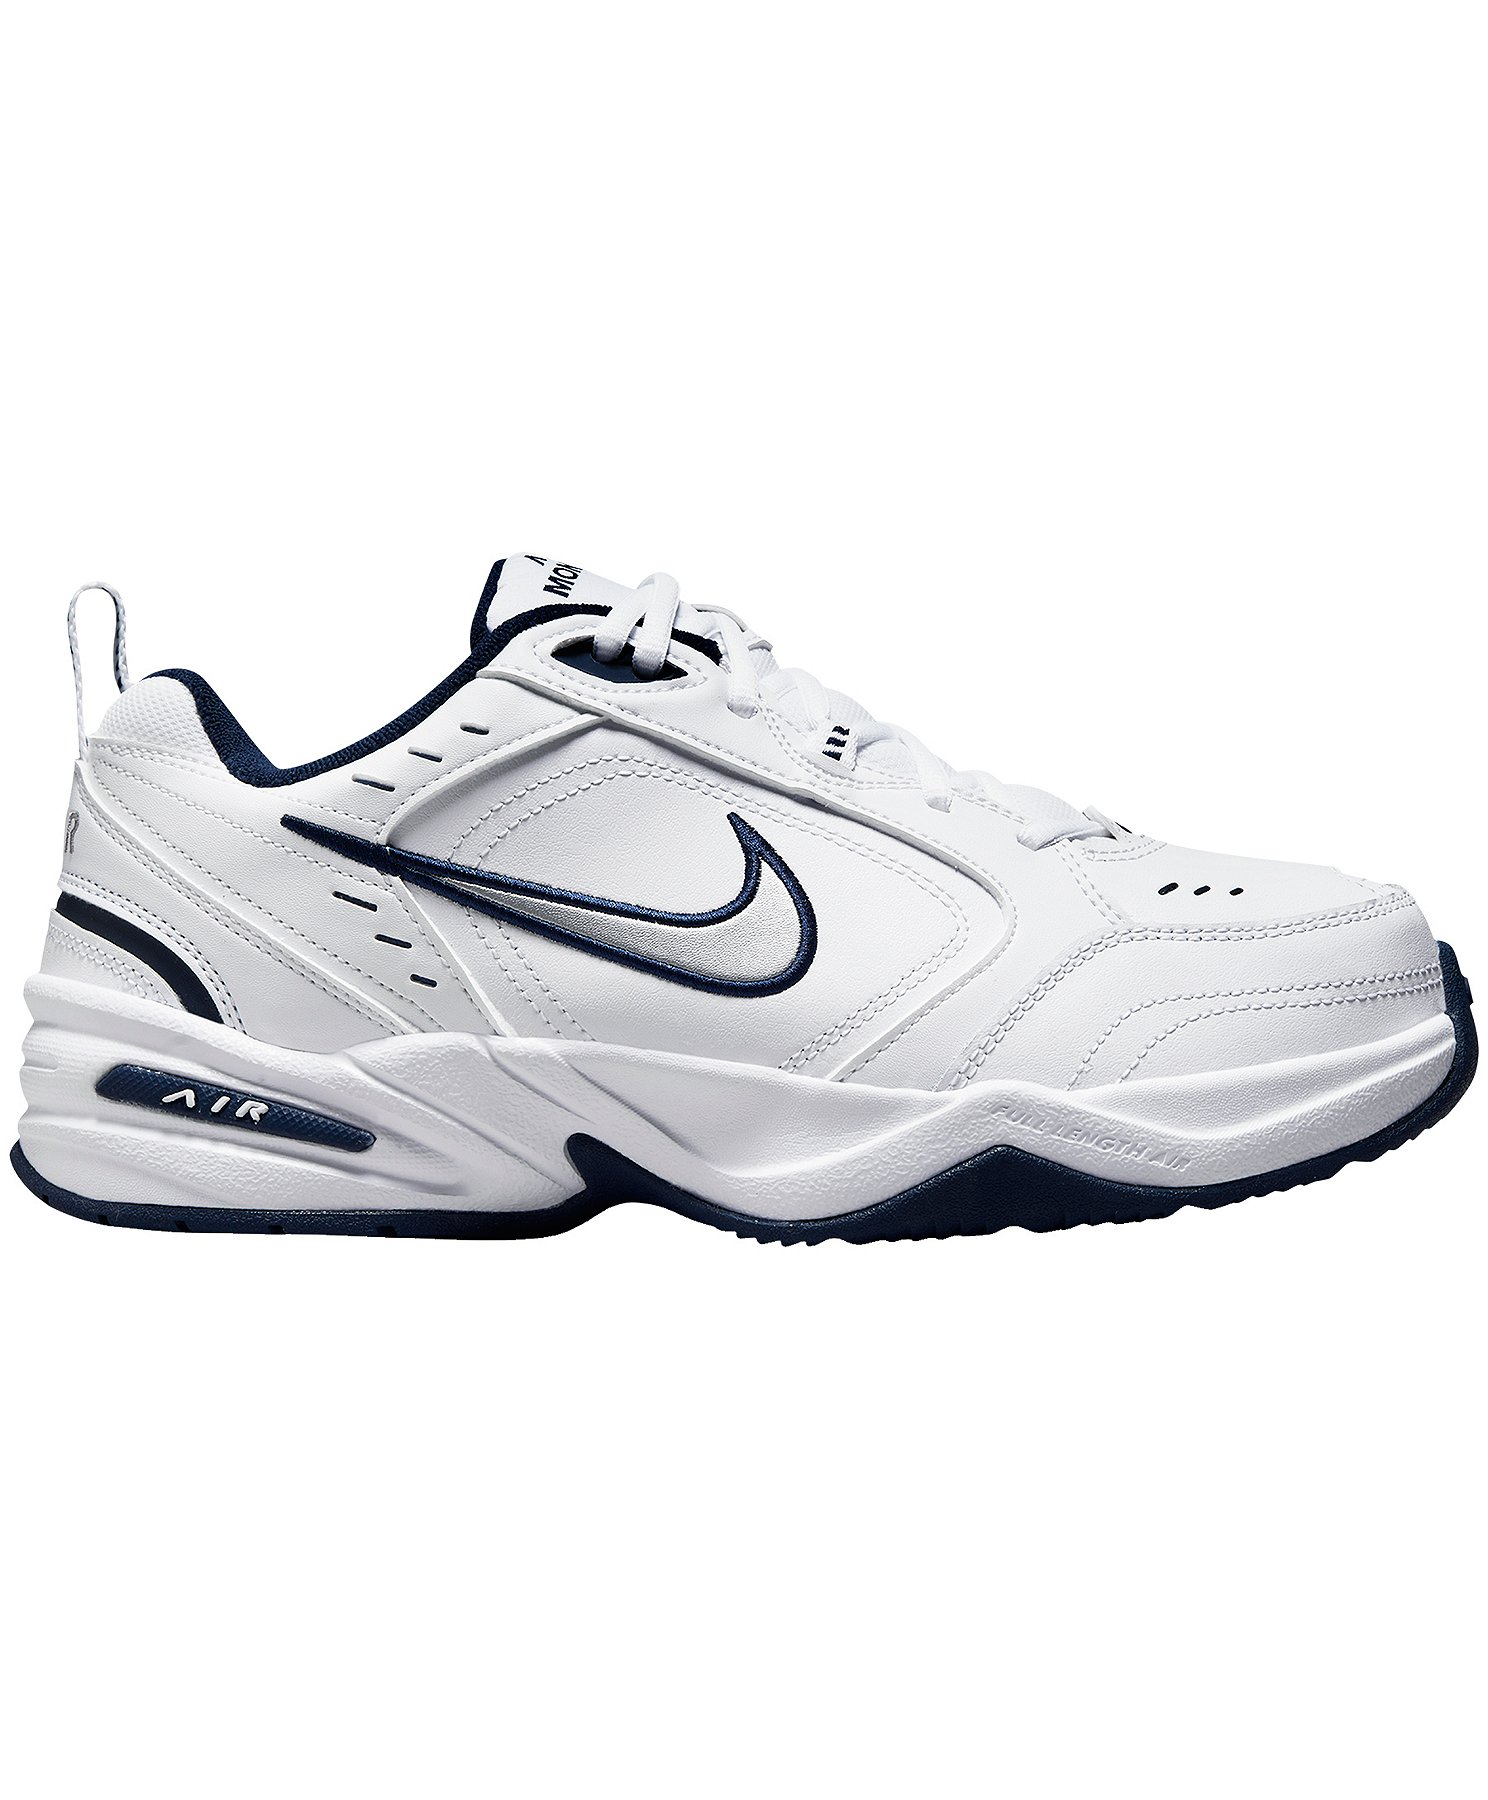 new varieties enjoy bottom price new products for Men's Nike Air Monarch IV Training Shoes - Wide 4E